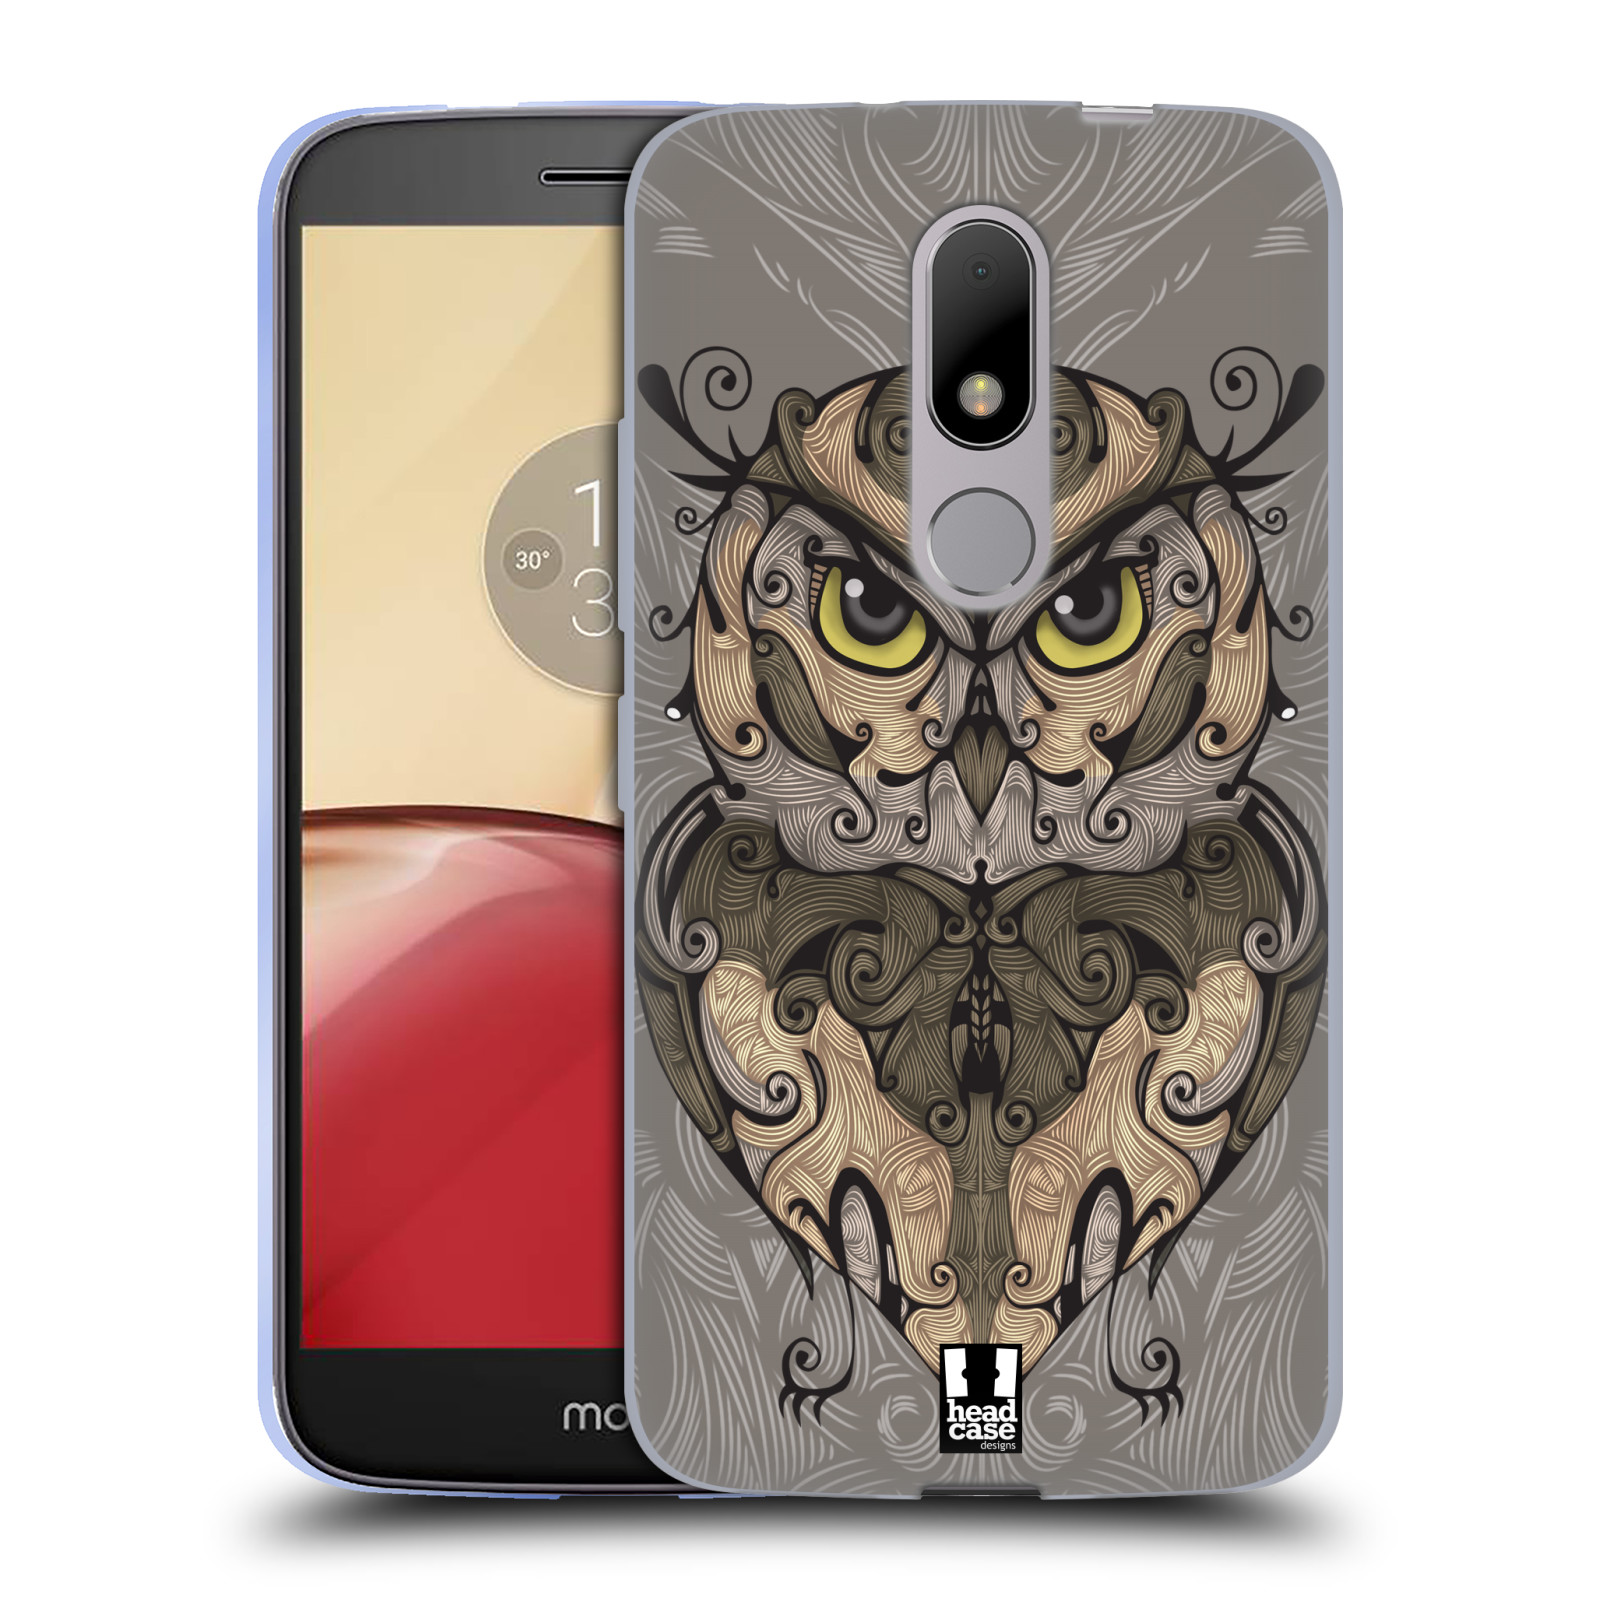 HEAD-CASE-DESIGNS-ANIMAL-SWIRLS-SOFT-GEL-CASE-FOR-MOTOROLA-MOTO-M